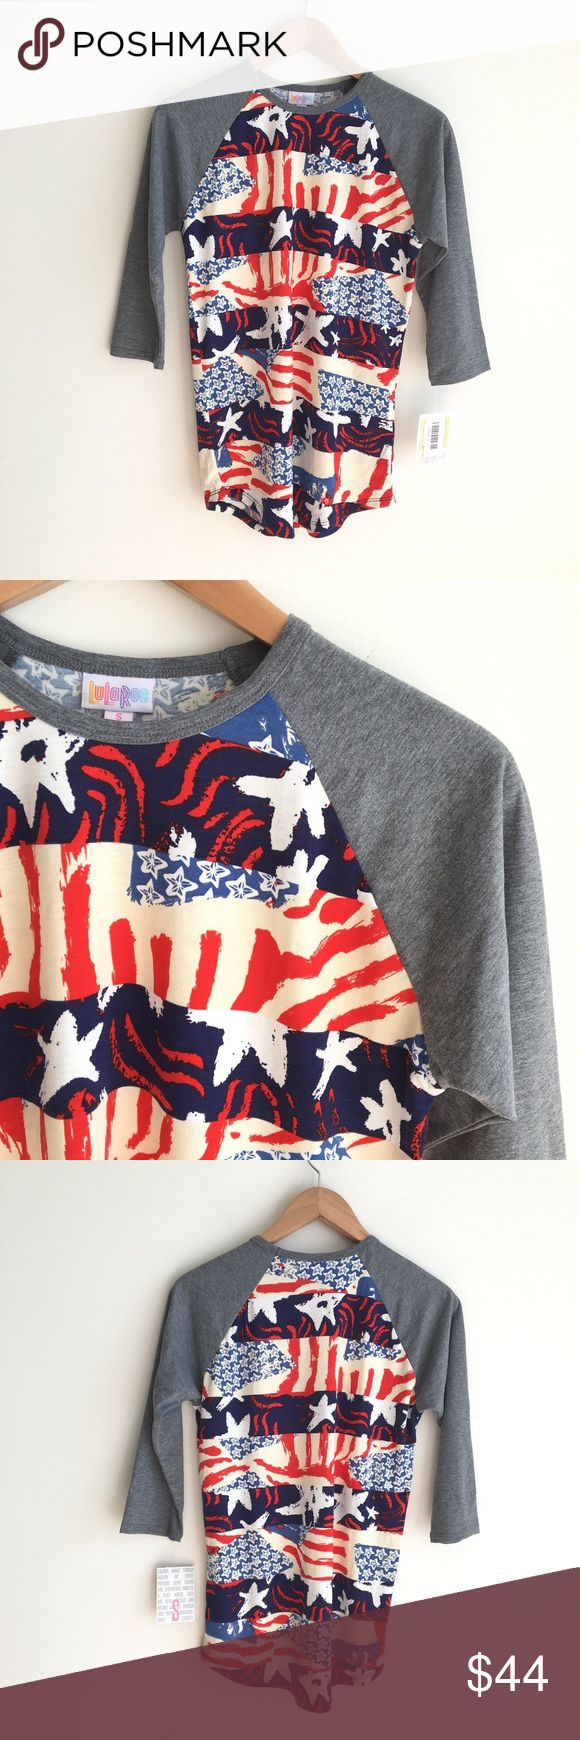 NWT LuLaRoe America Randy Tee Red White Blue 96% polyester, 4% spandex. Baseball style tee with gray sleeves and an Americana themed body of red, white and blue Stars and Stripes. Brand new, with tags attached. LuLaRoe Tops Tees - Long Sleeve